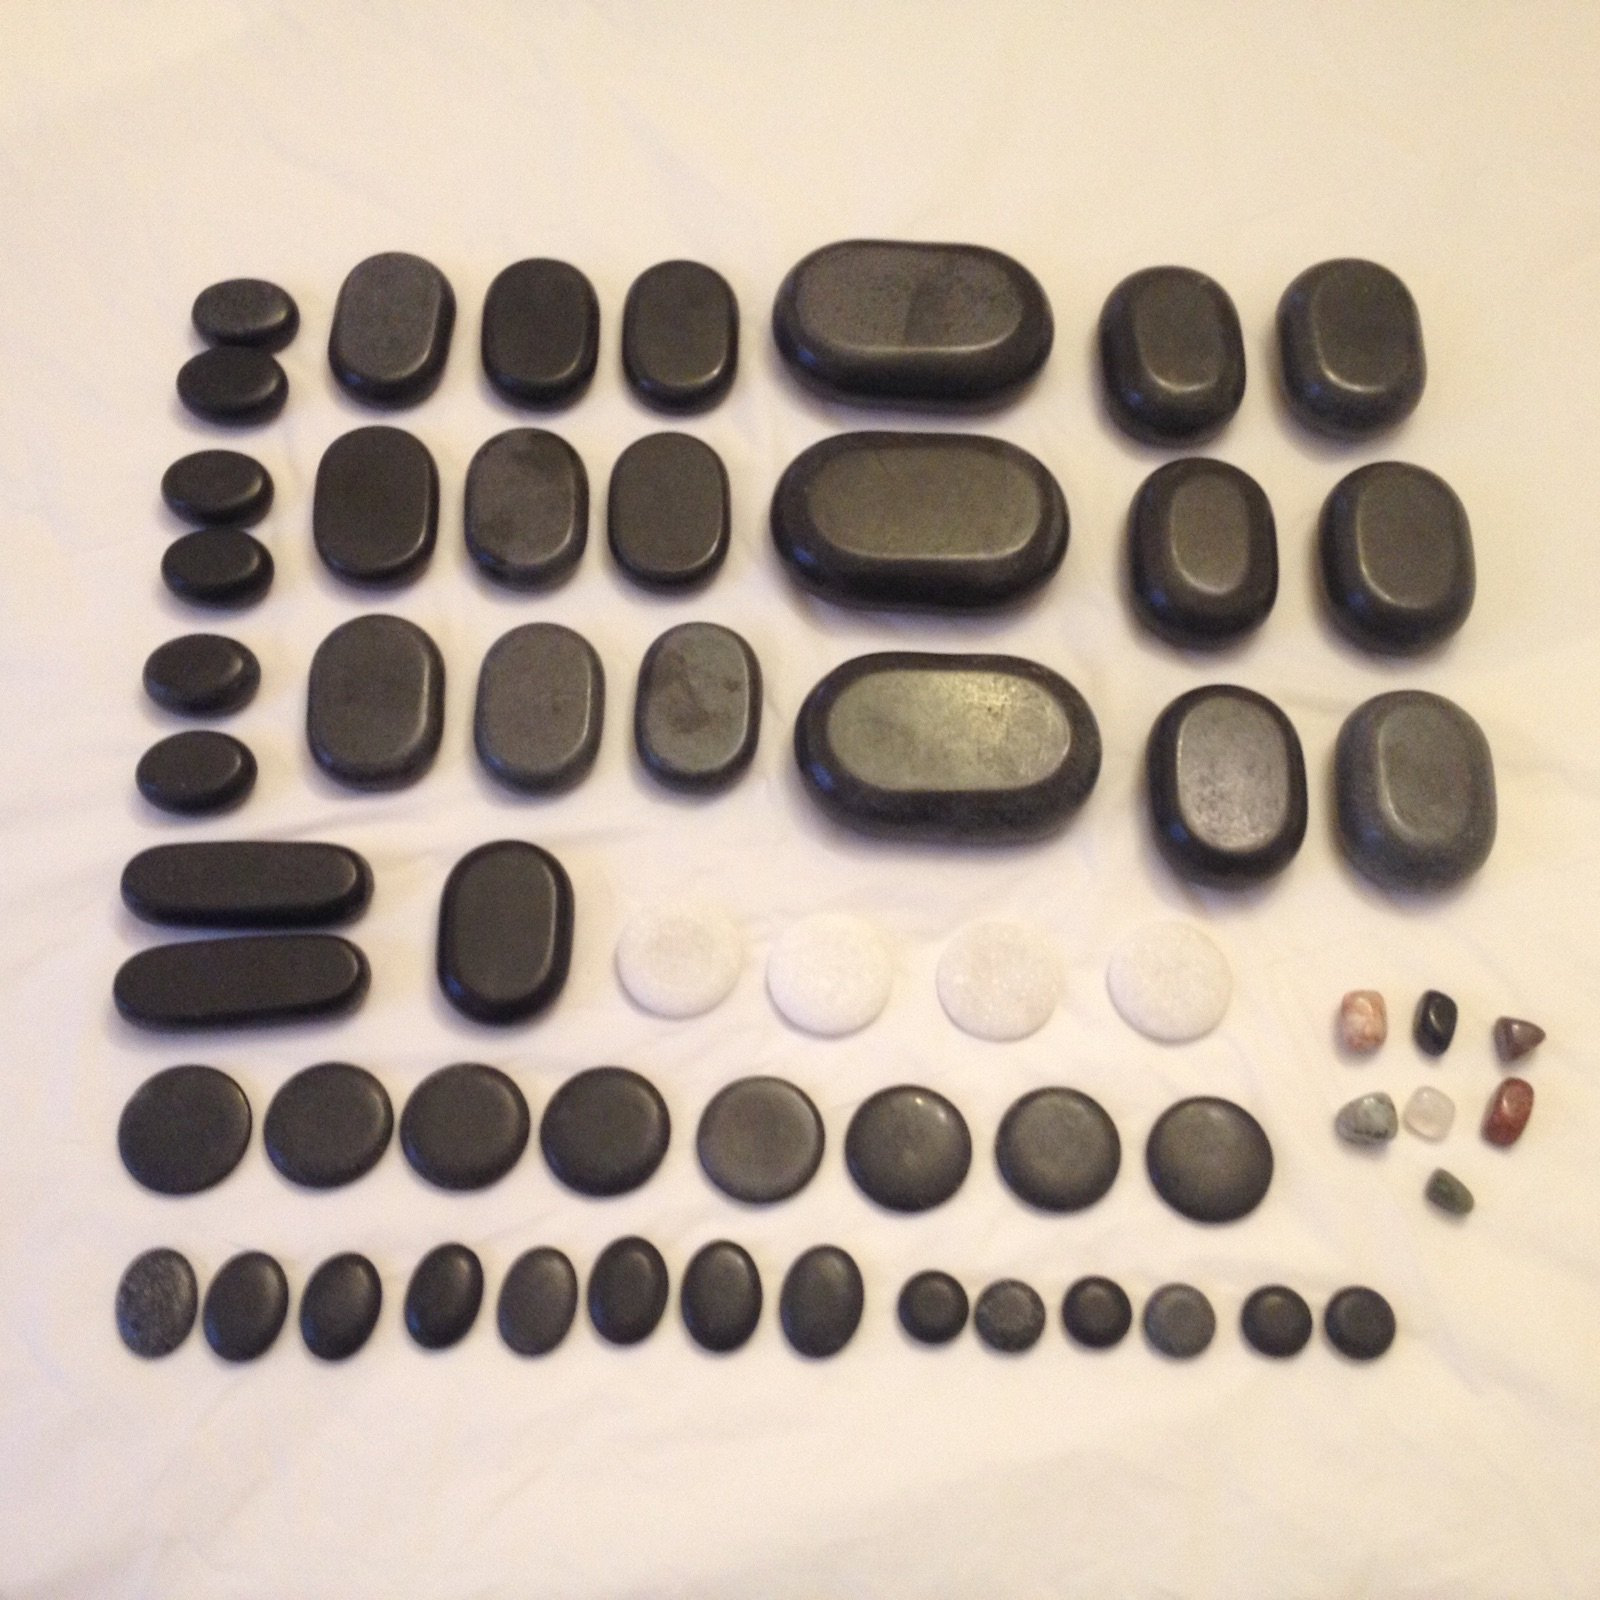 Professional Basalt Lava Hot Stone Massage Loose Kit of 60 Pcs